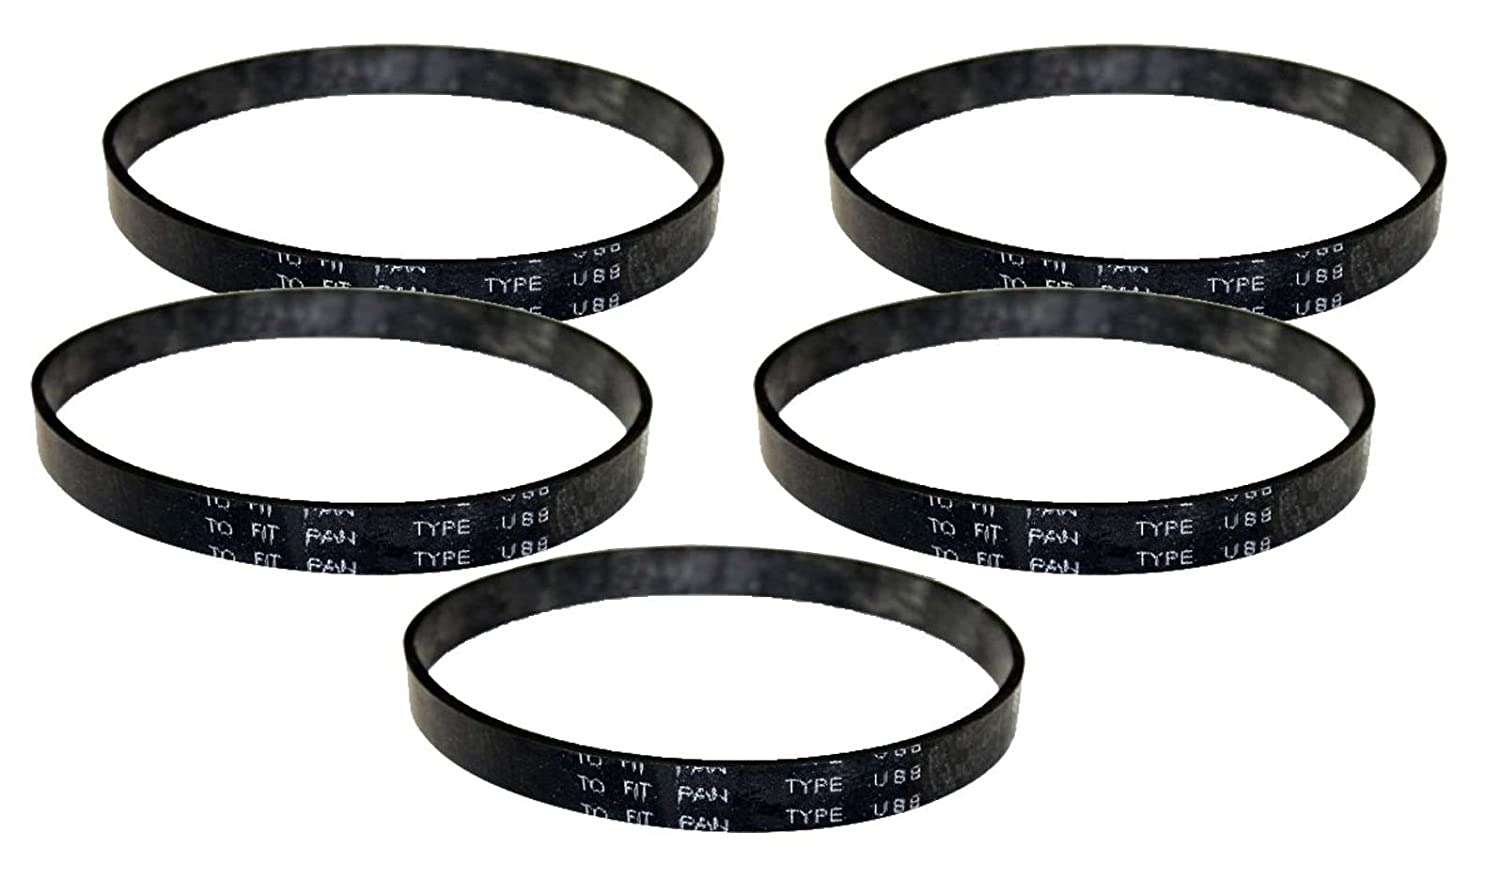 (5) Kenmore Model 116 Belt 20-5275 - NEW TacPower